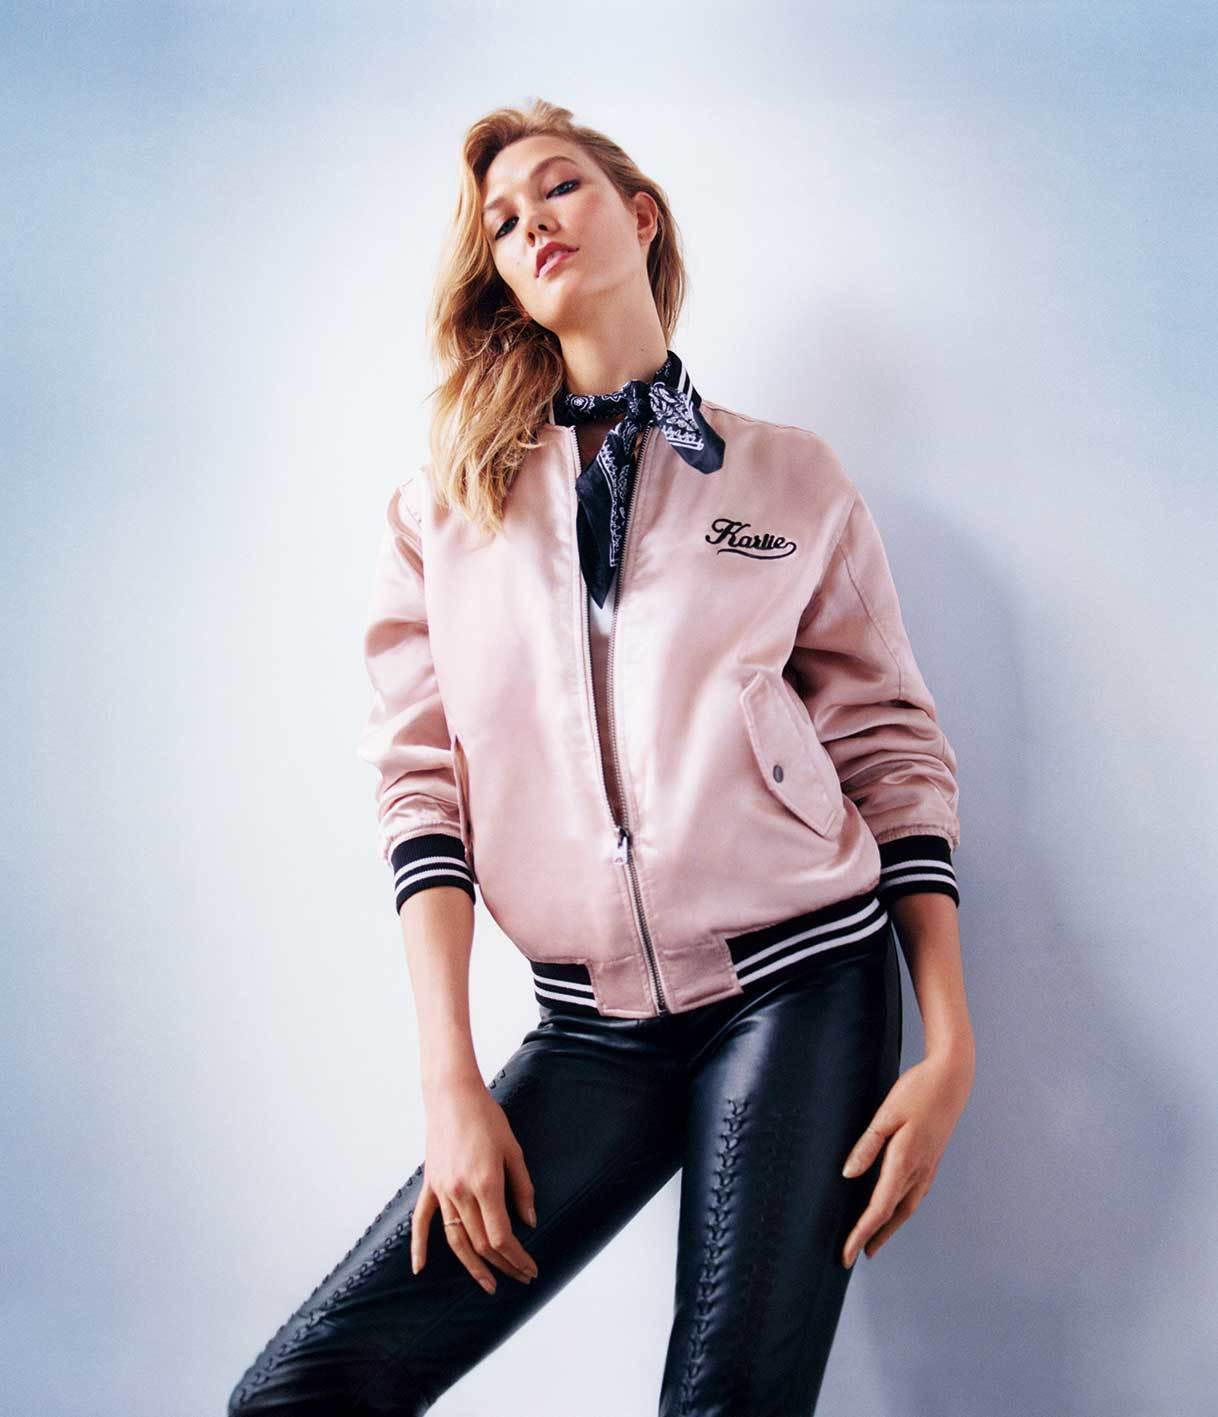 a-guide-to-cool-karlie-kloss-photo-folkr-mode-20